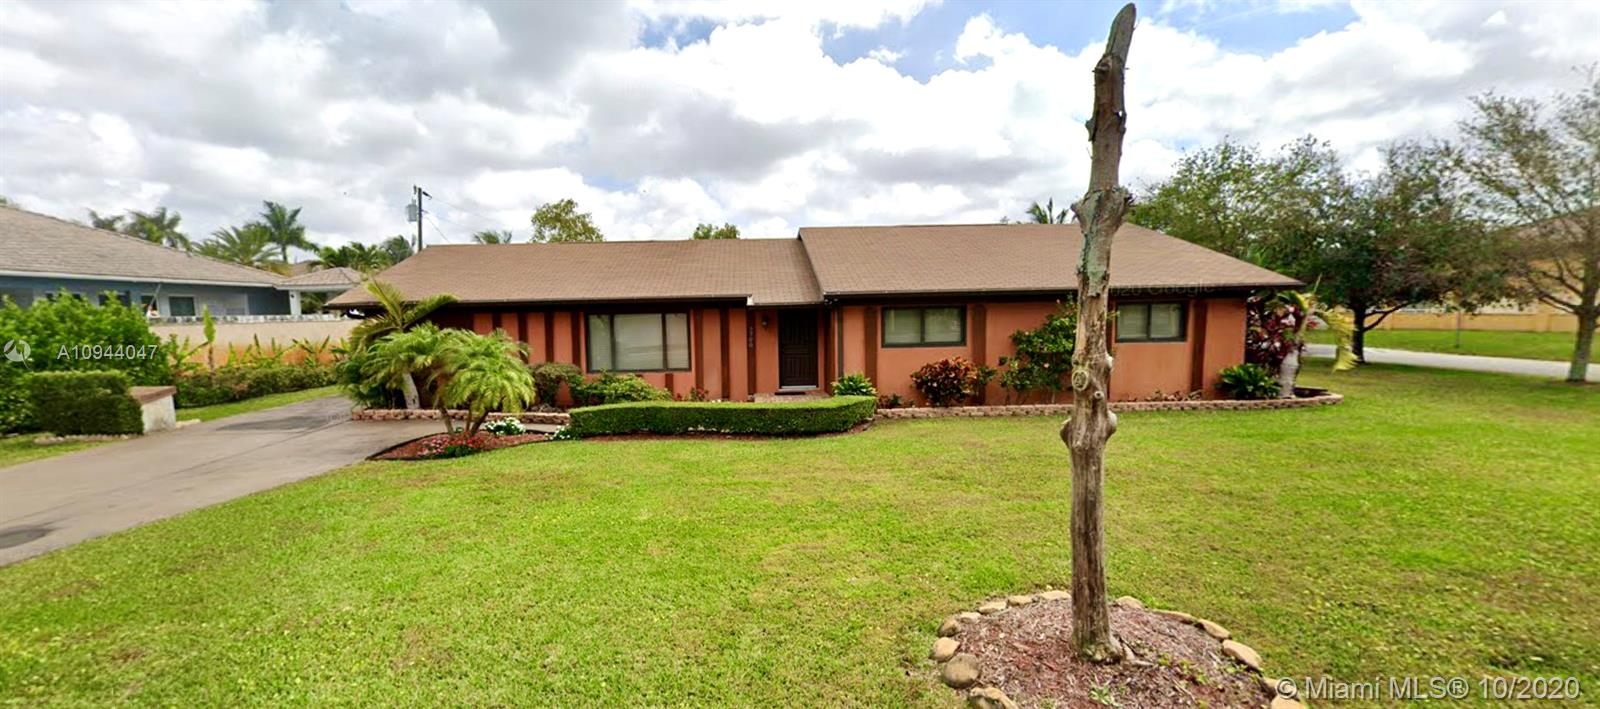 2700 NW 100th Ave  For Sale A10944047, FL